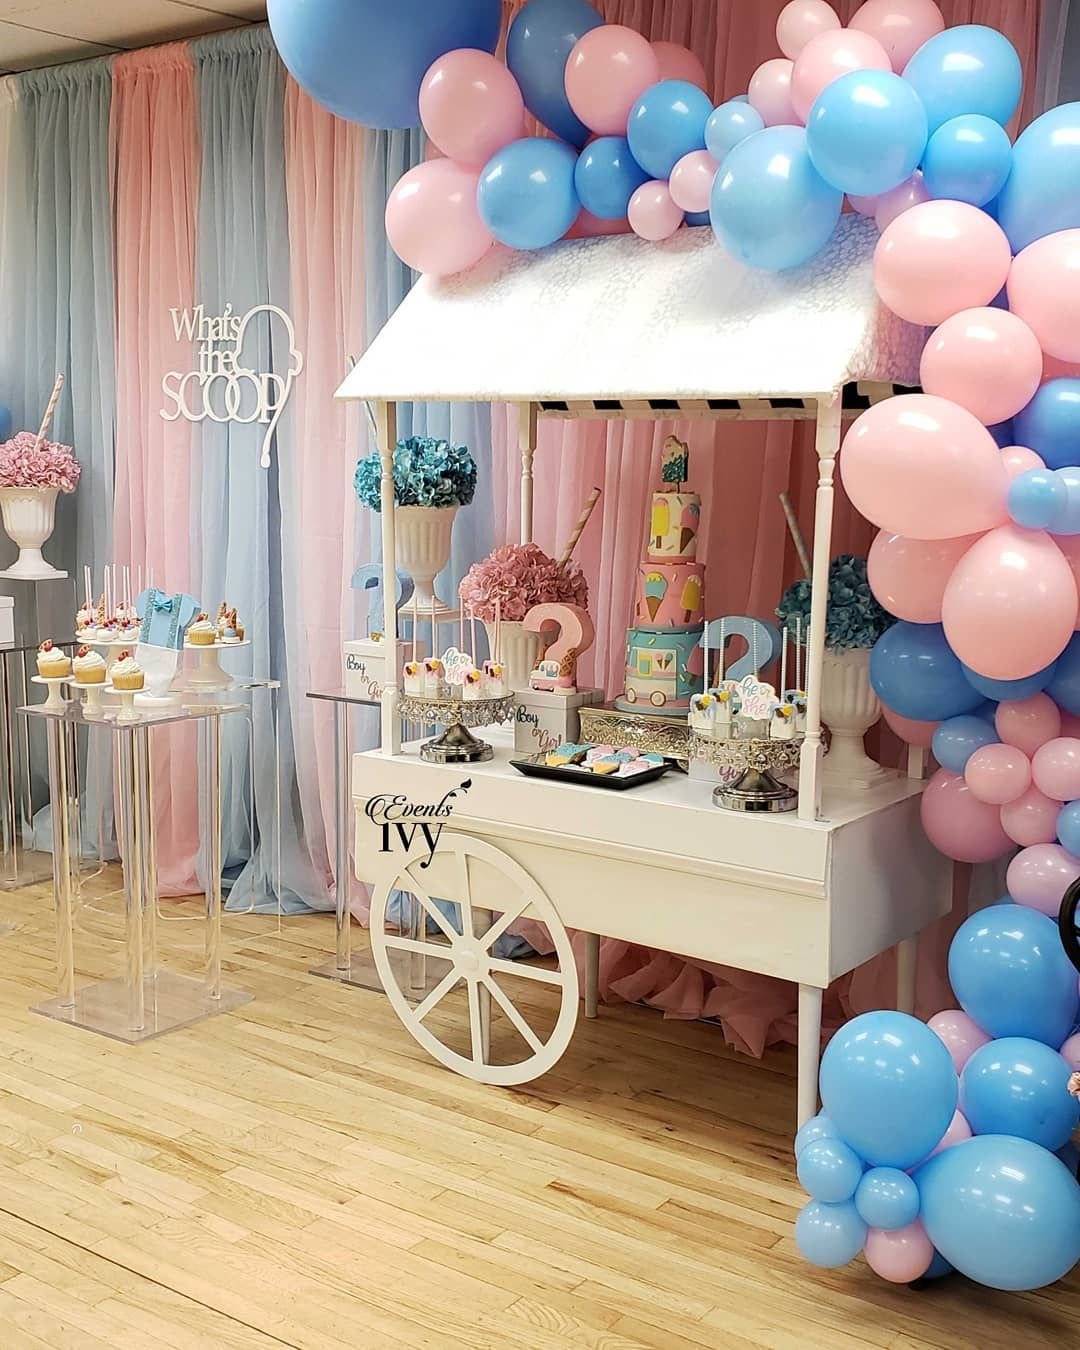 Events Ivy Inc On Instagram What S The Scoop Gender Reveal Eventsivy Gender Reveal Decorations Gender Reveal Party Decorations Baby Gender Reveal Party